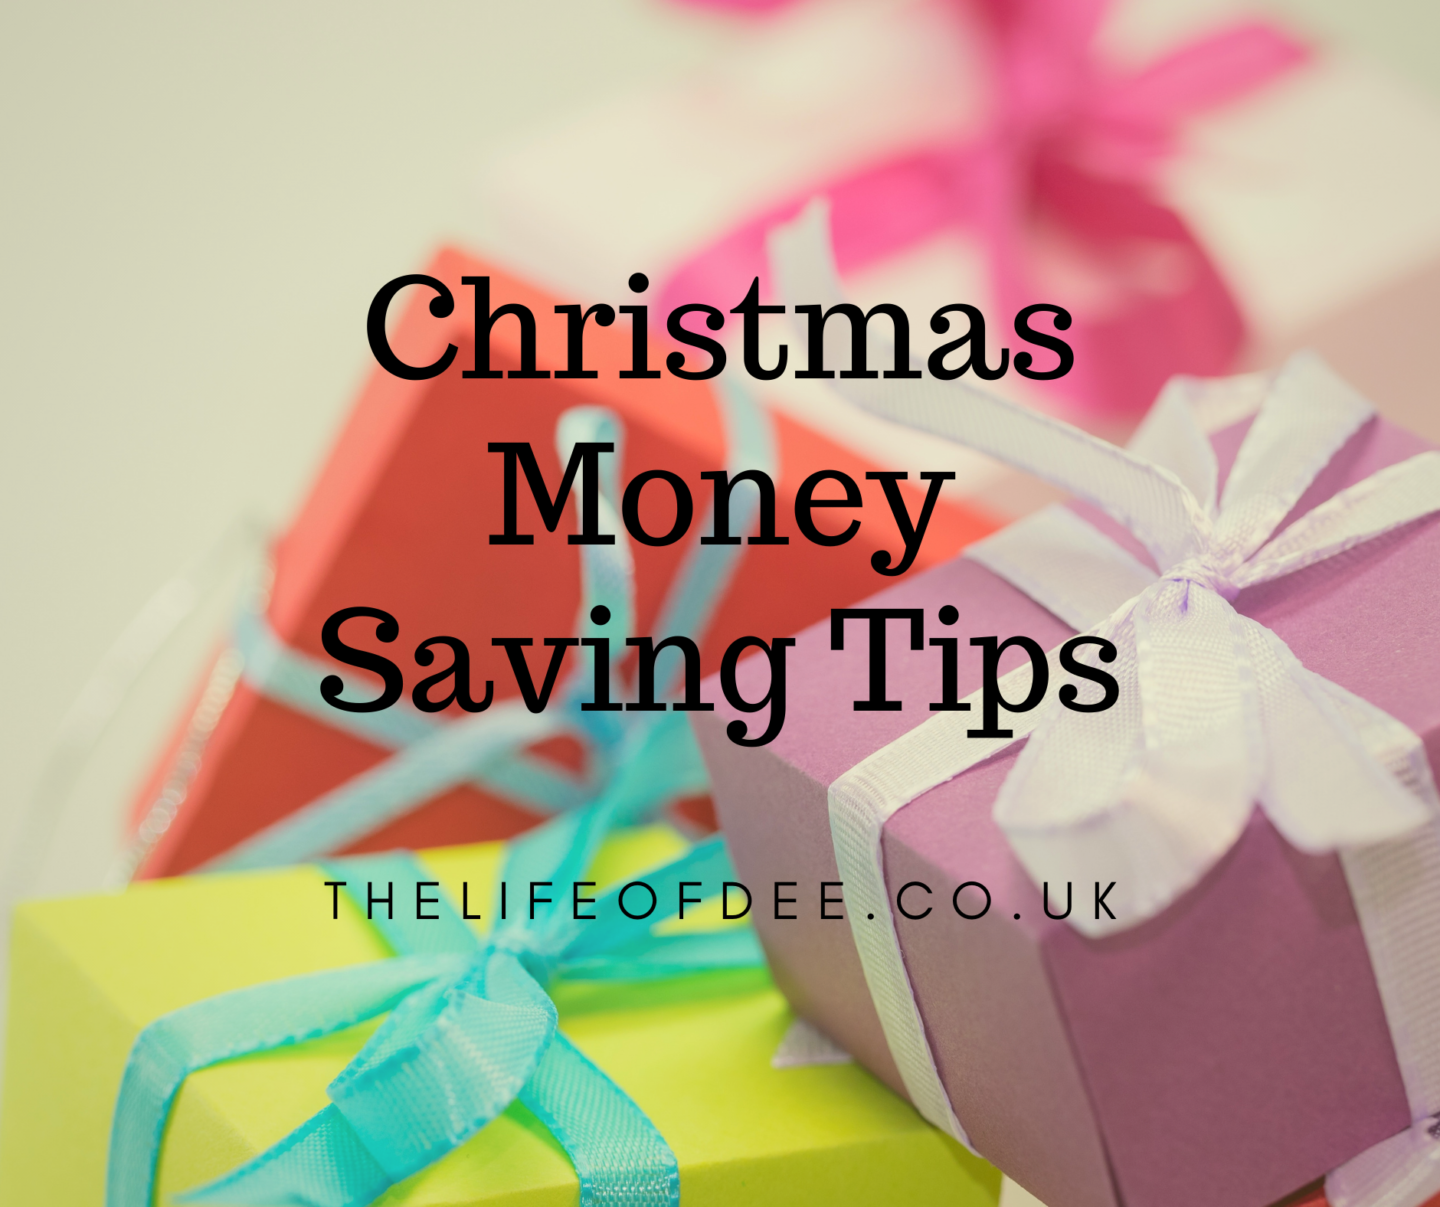 Christmas Money Saving Tips | Looking to have Christmas on a budget this year? Here are nine Christmas money saving tips to celebrate Christmas more cheaply.